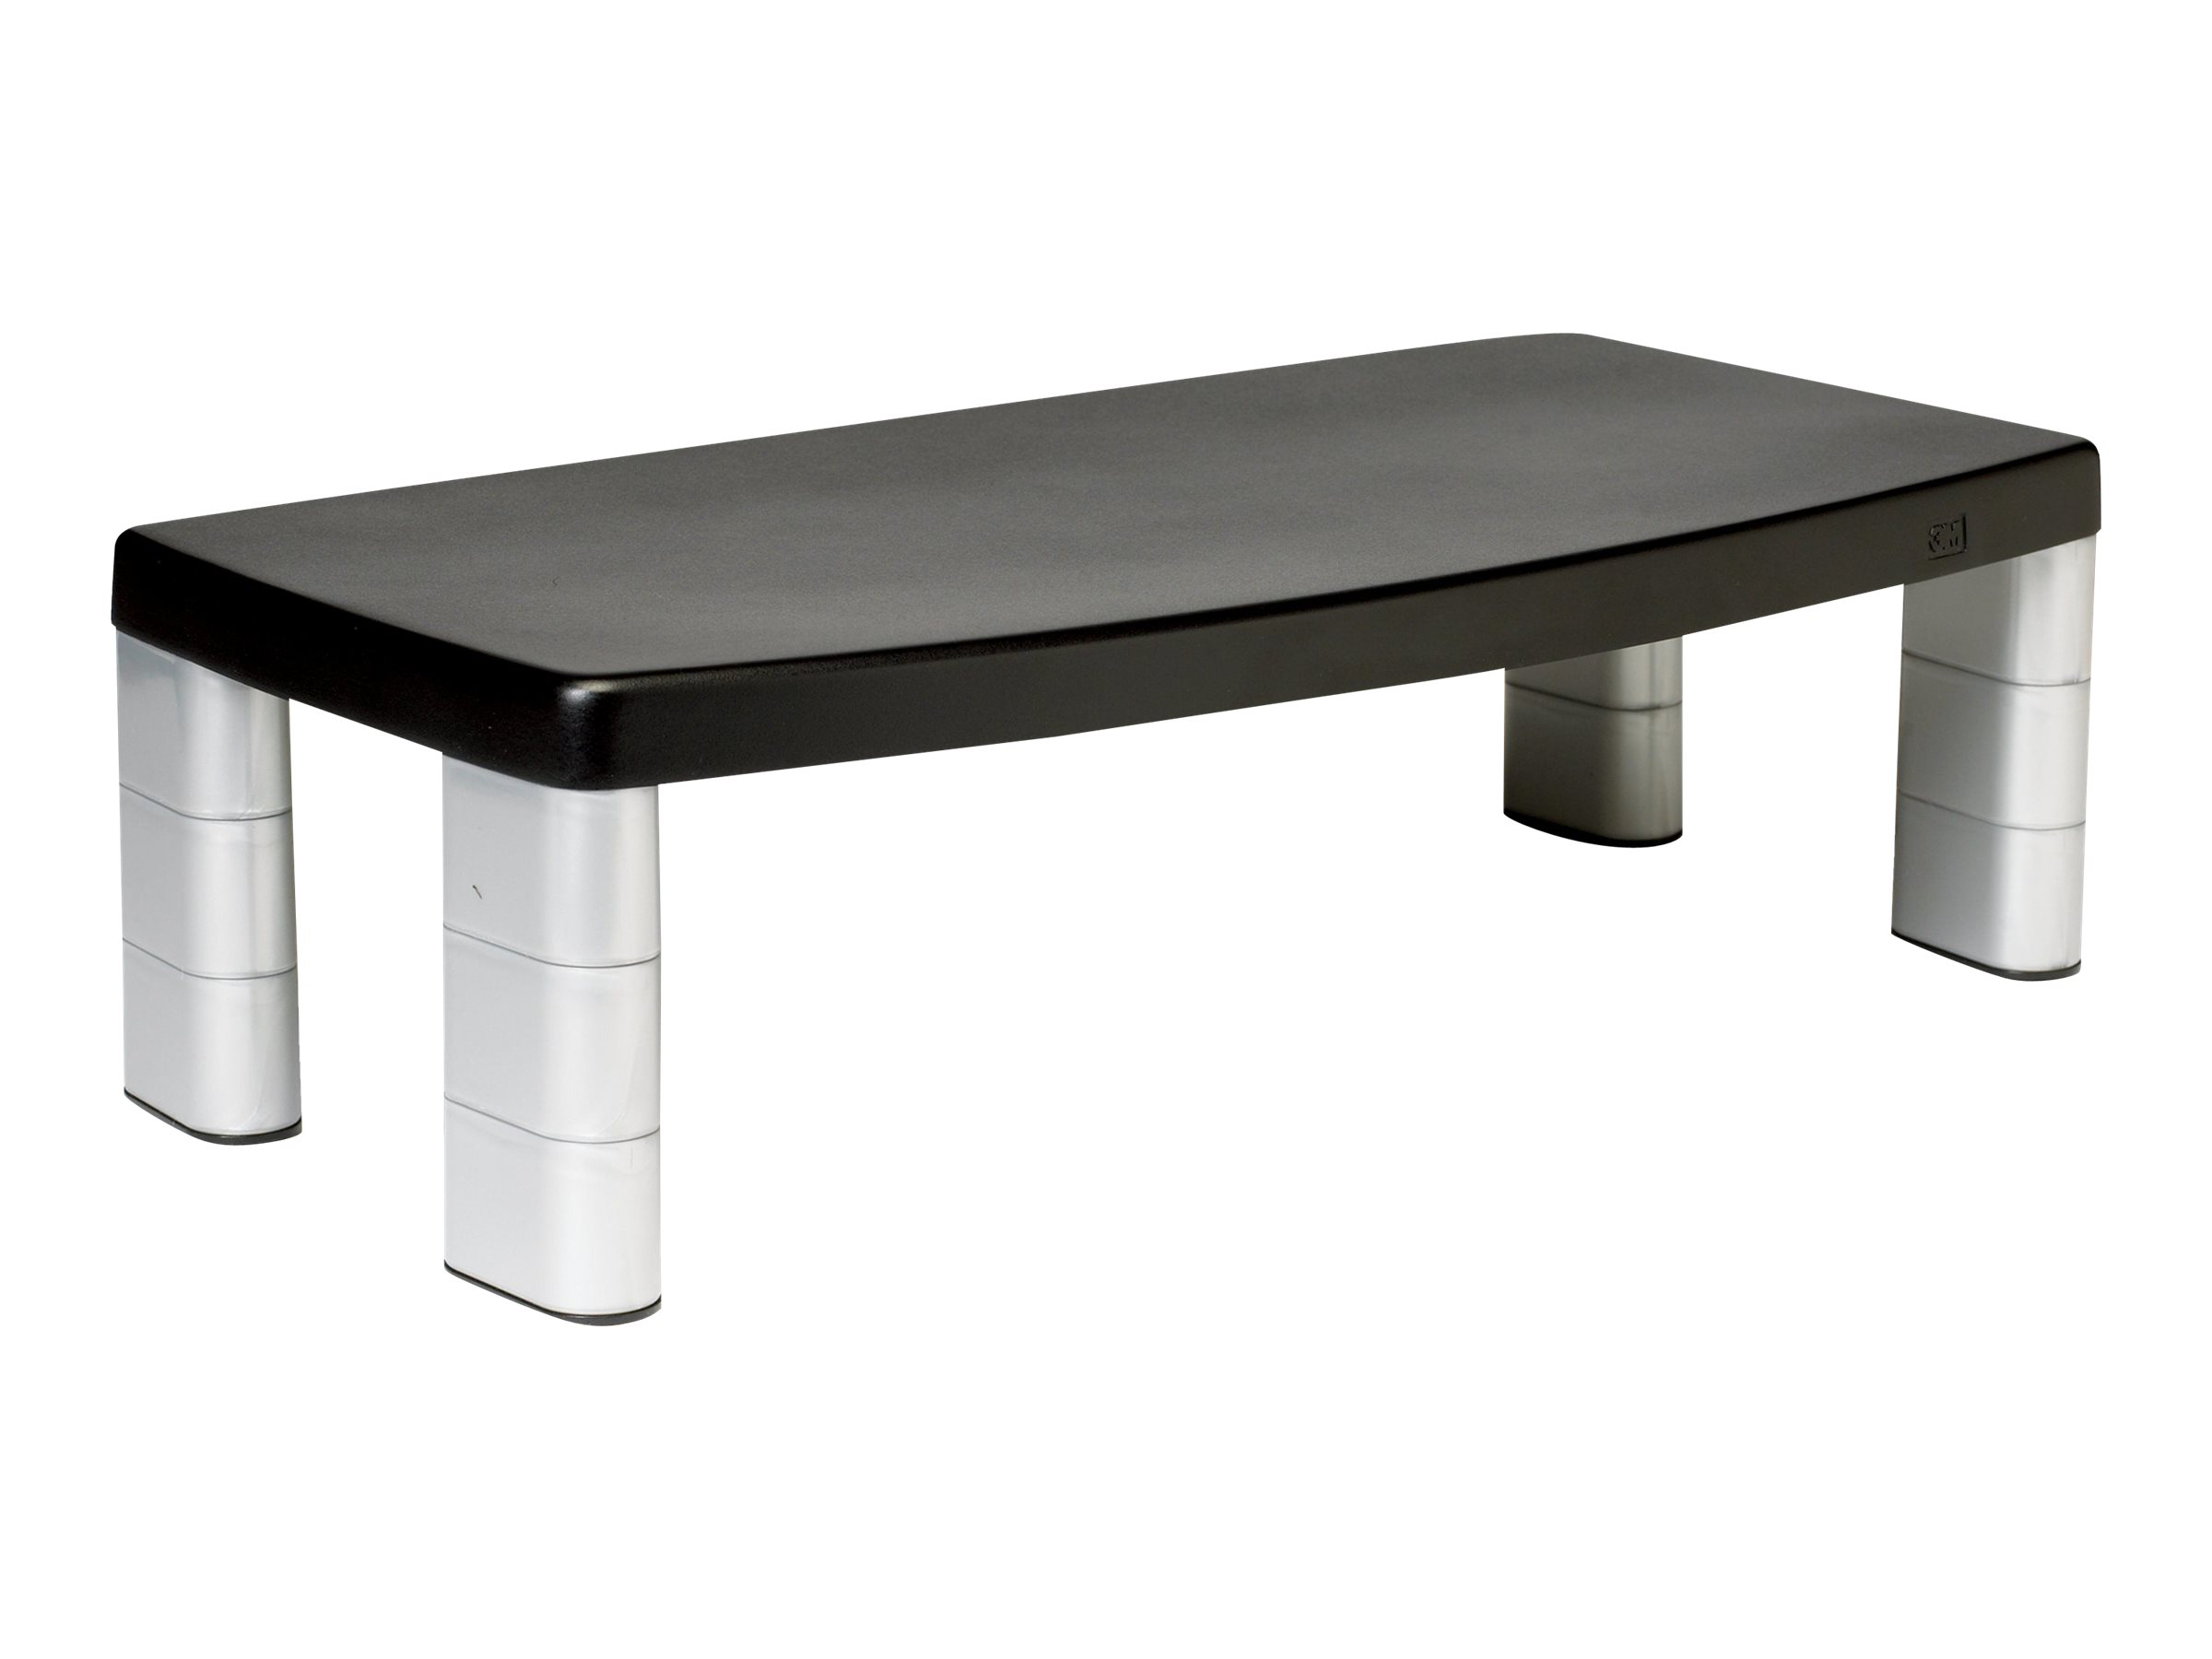 Image for 3M Adjustable Monitor Stand Extra Wide - Stand from Circuit City